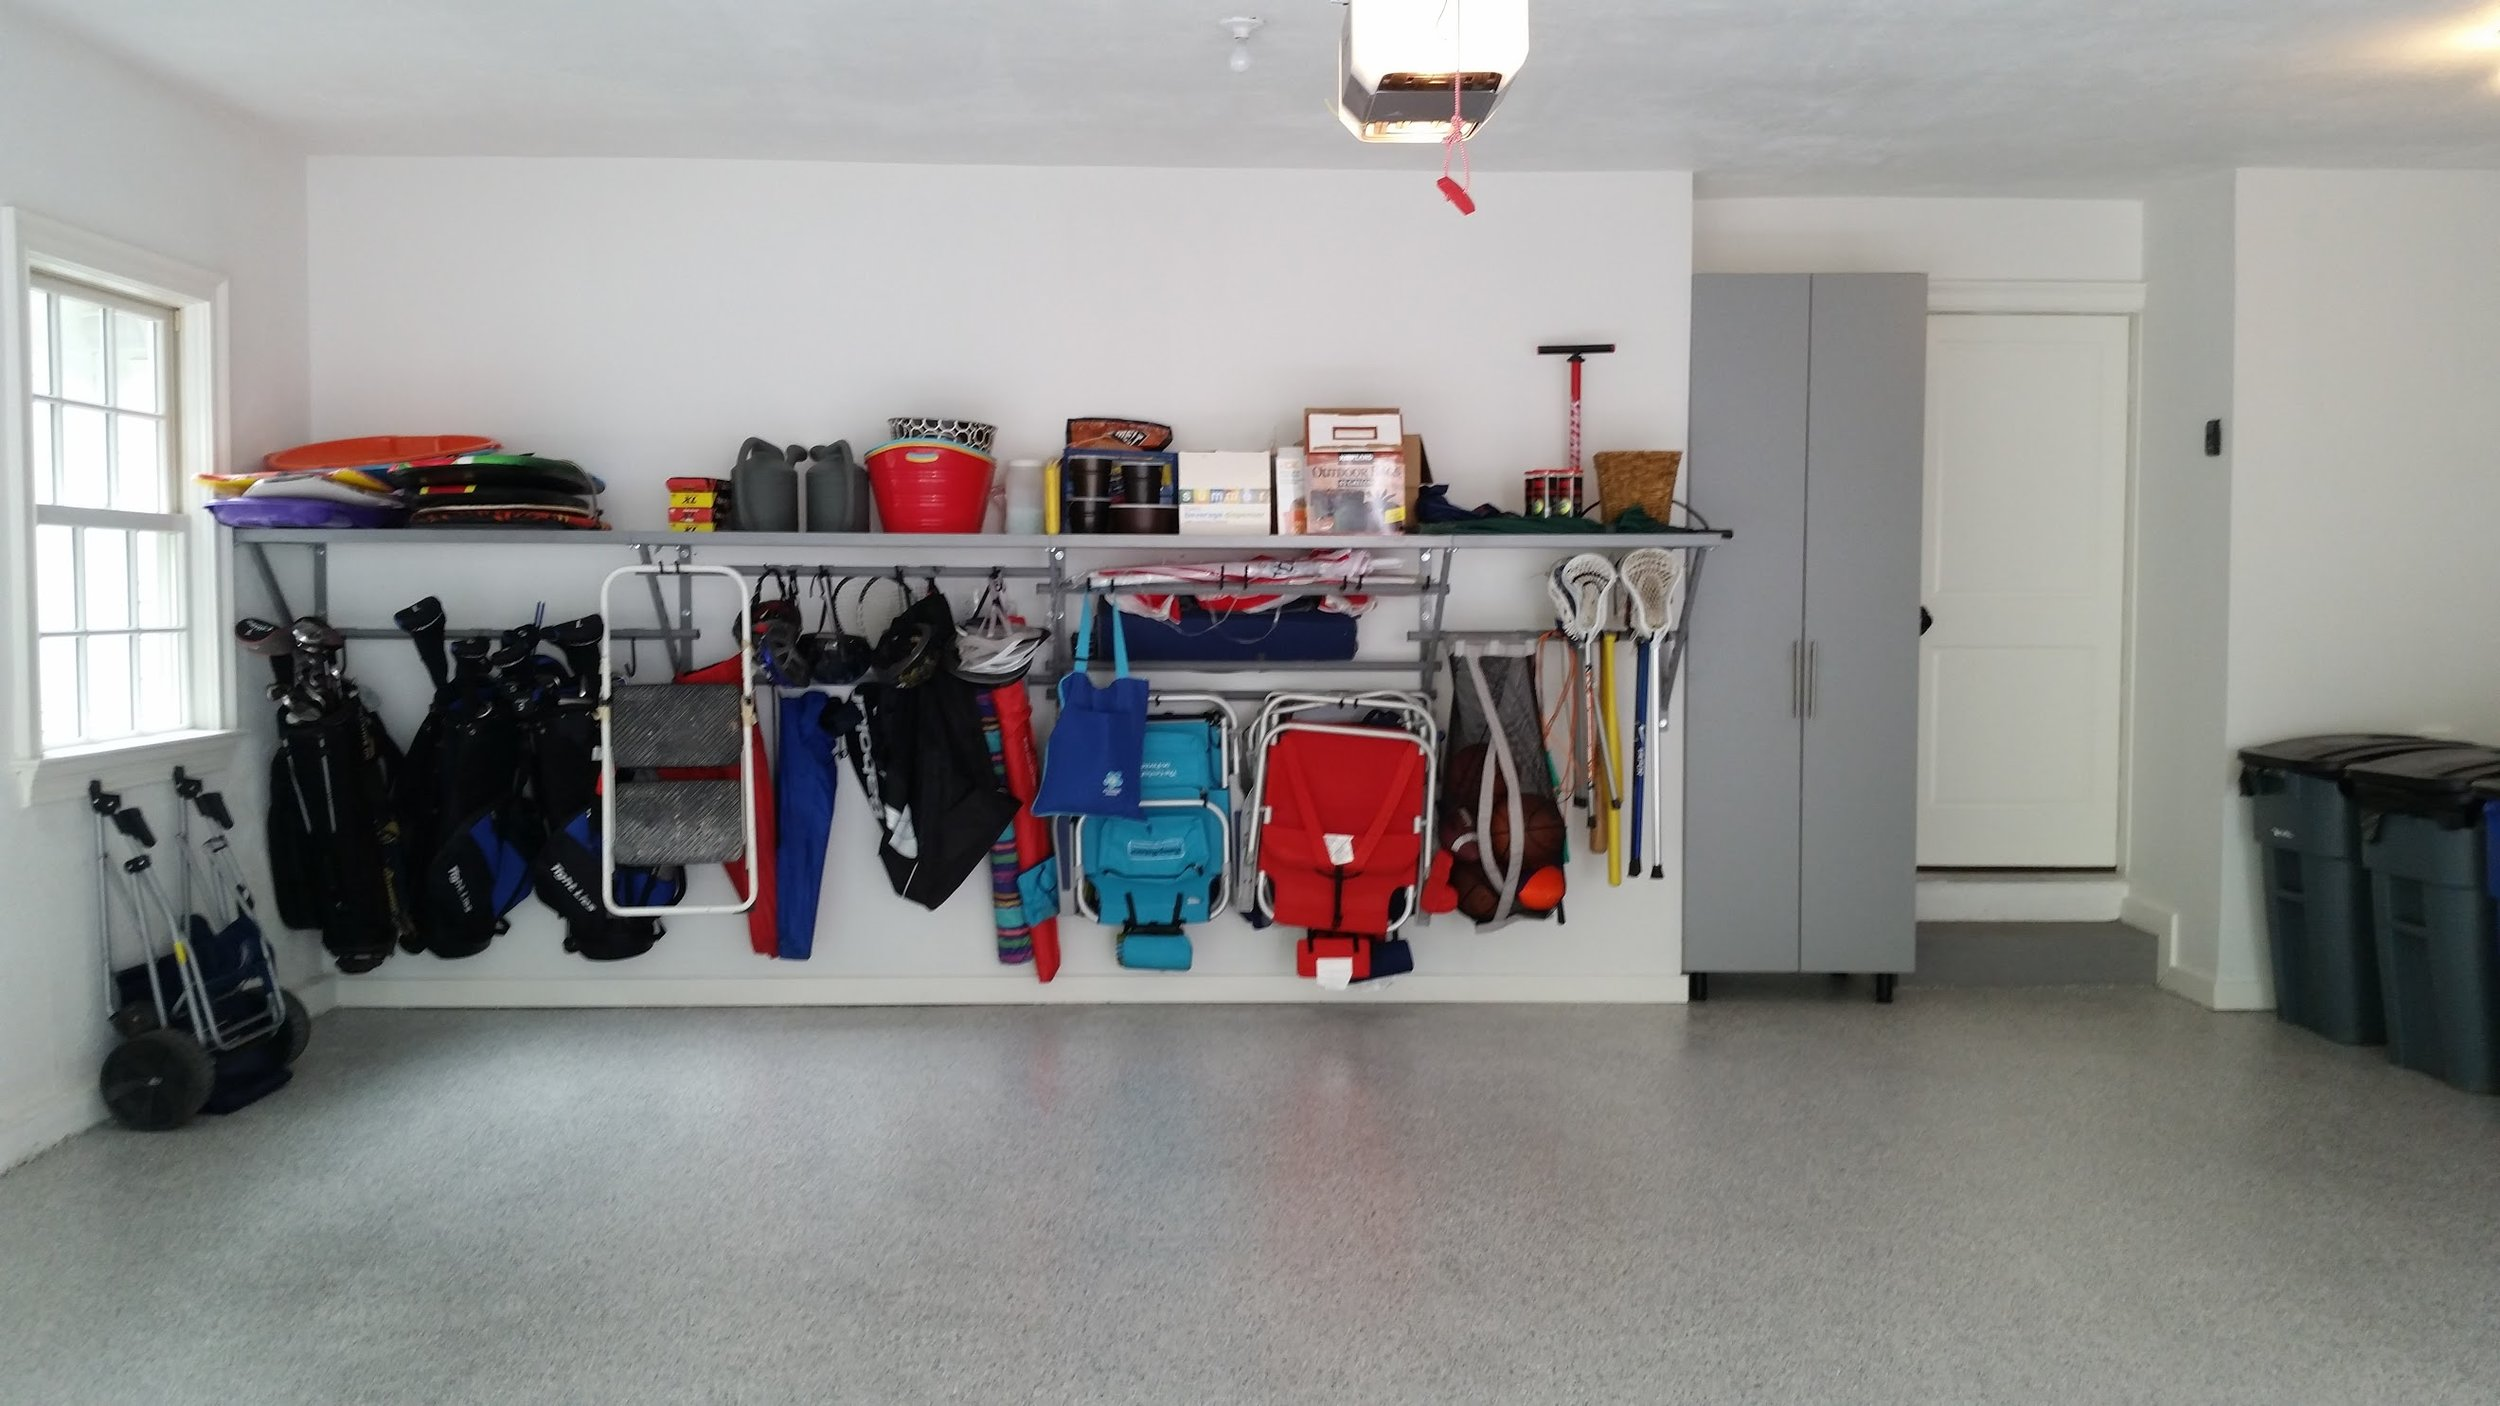 Garage concrete floor with polyurea / POLYASPARTIC coating with garage shelves and garage storage cabinets example